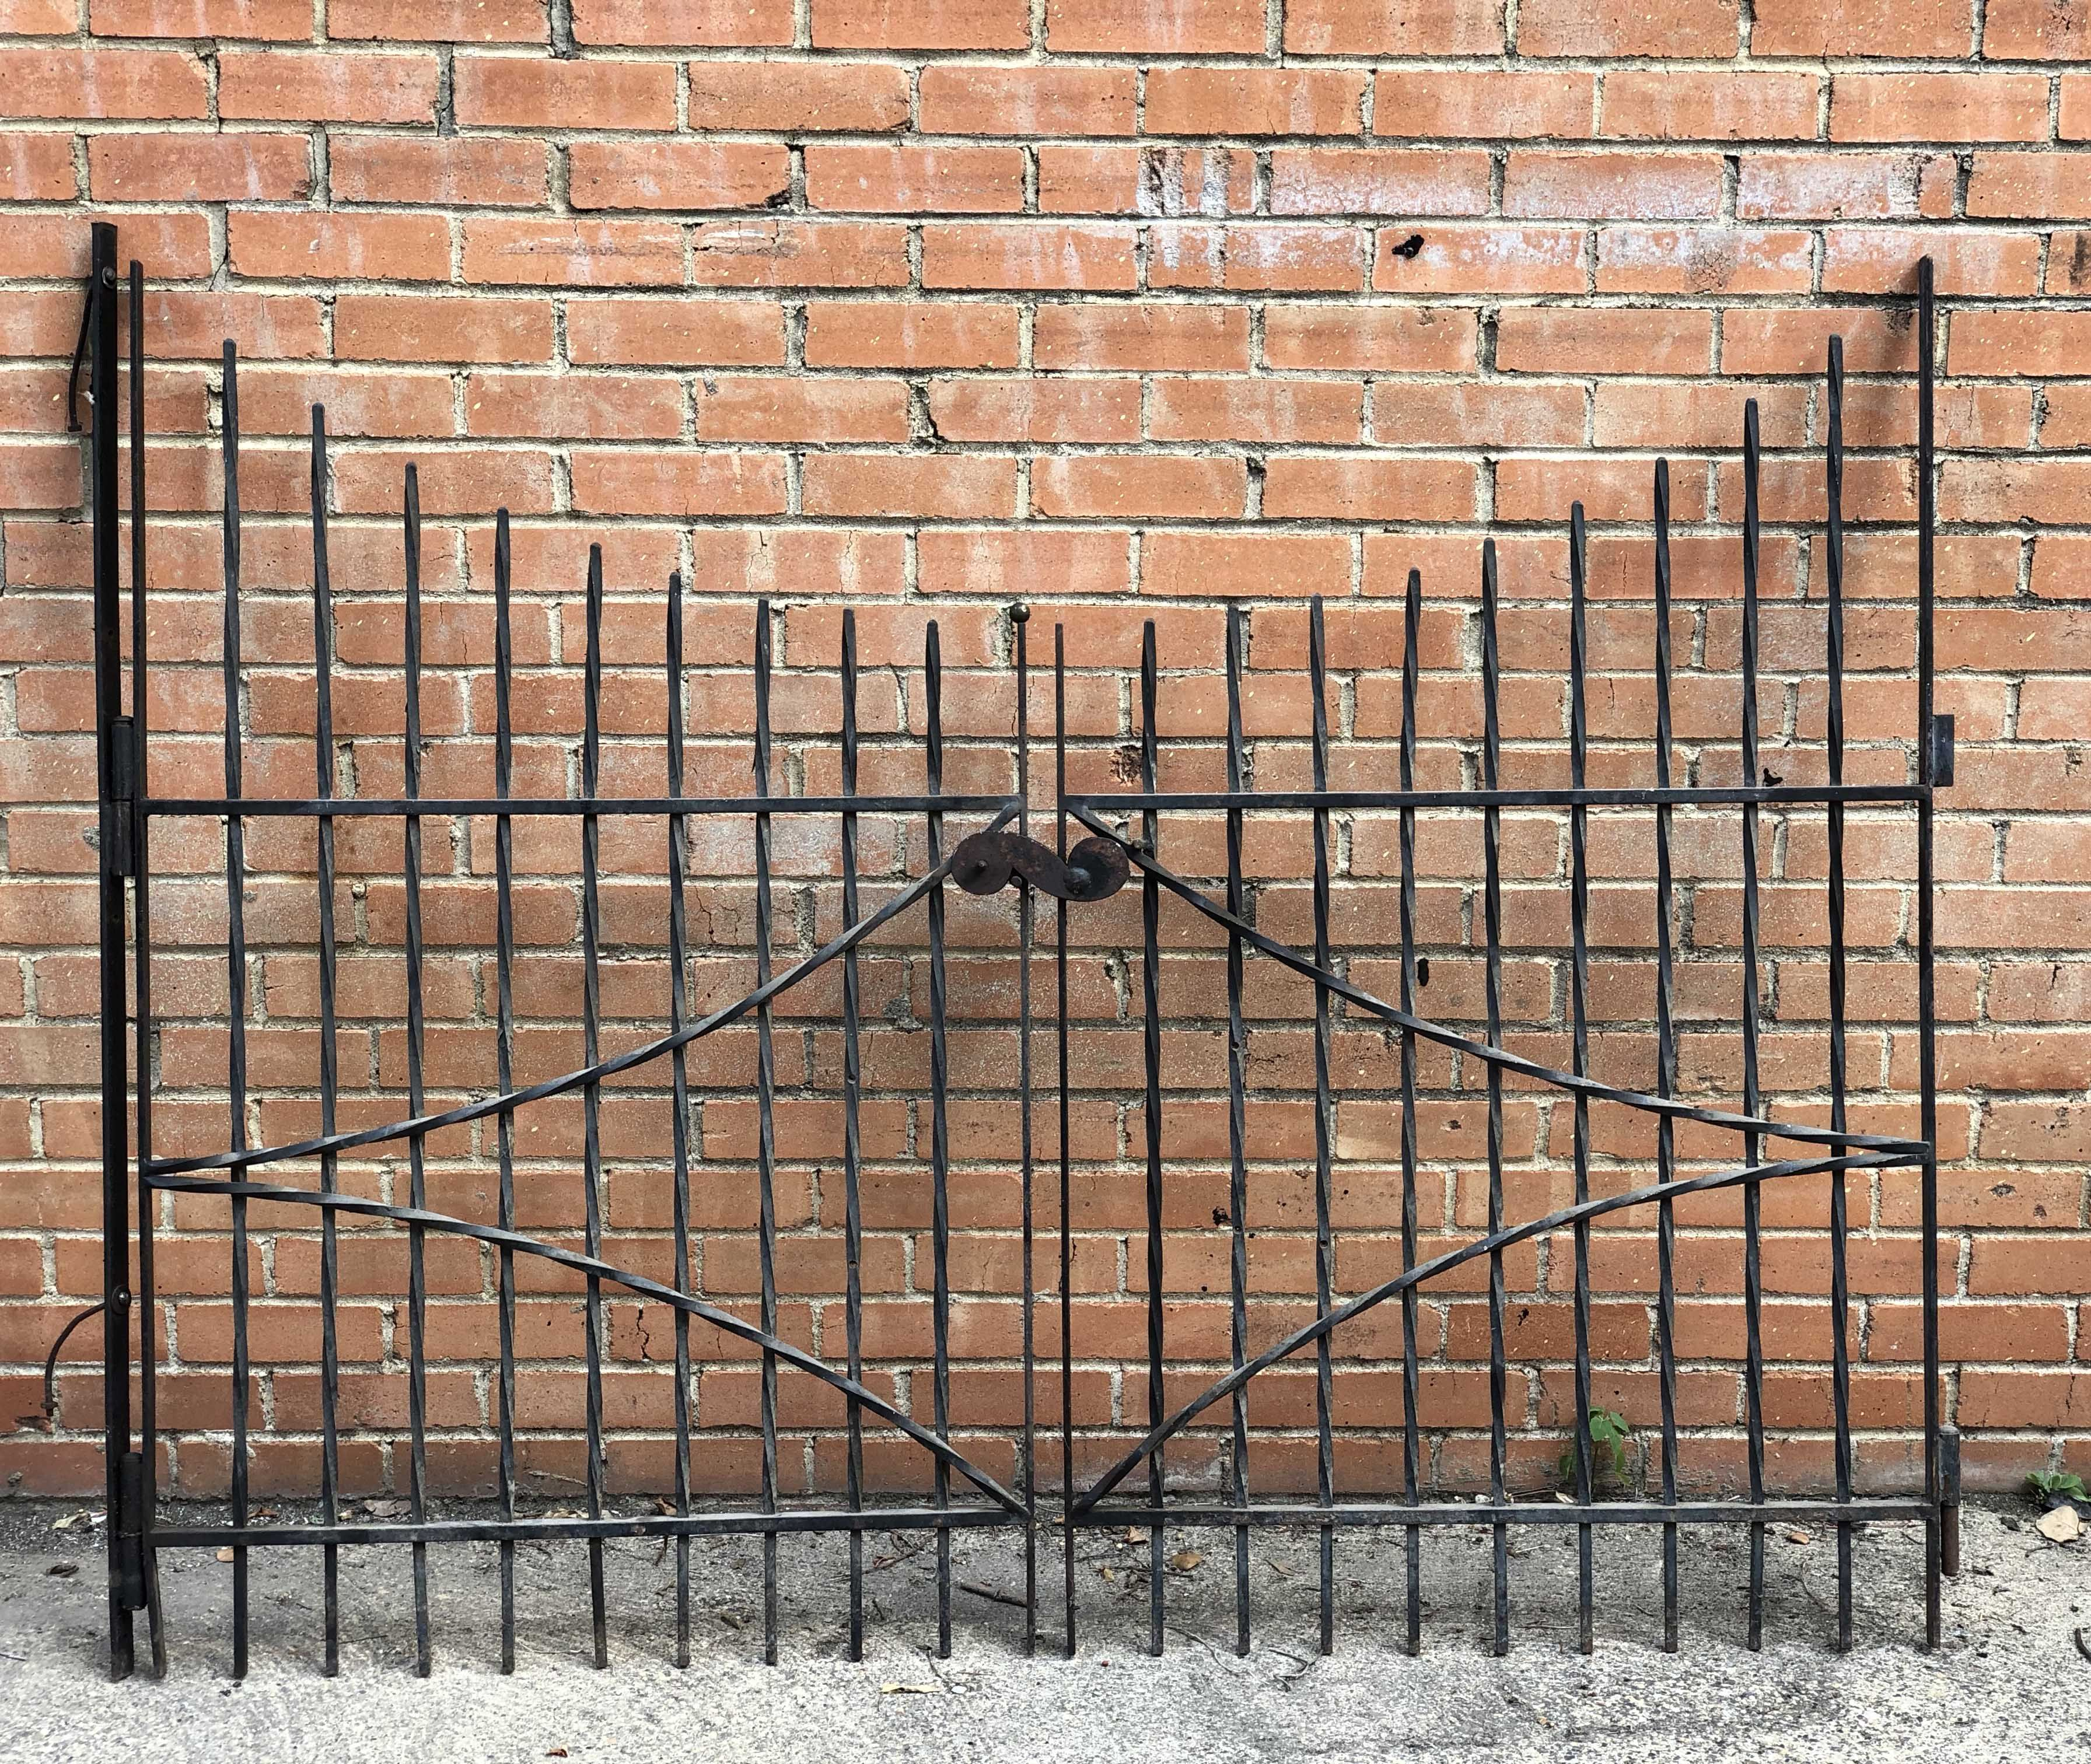 Two Piece Metal Gate With Latch 63 Wide X 49 High Country Garden